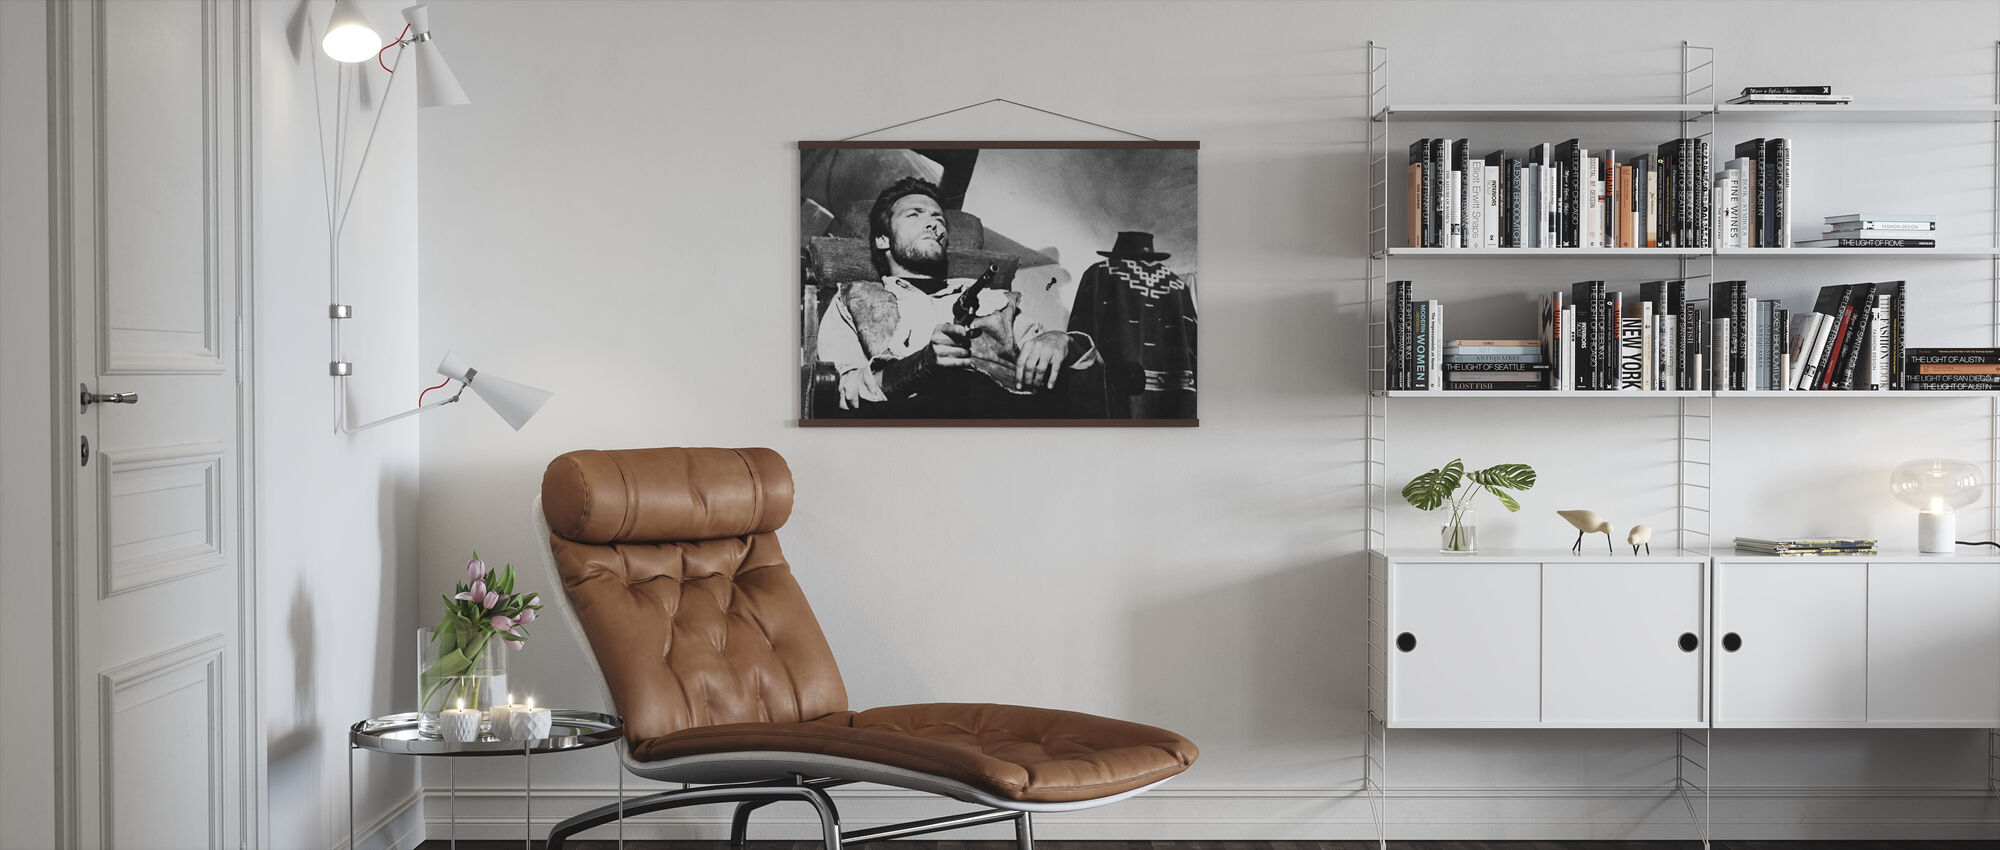 Few Dollars More - Clint Eastwood - Poster - Living Room